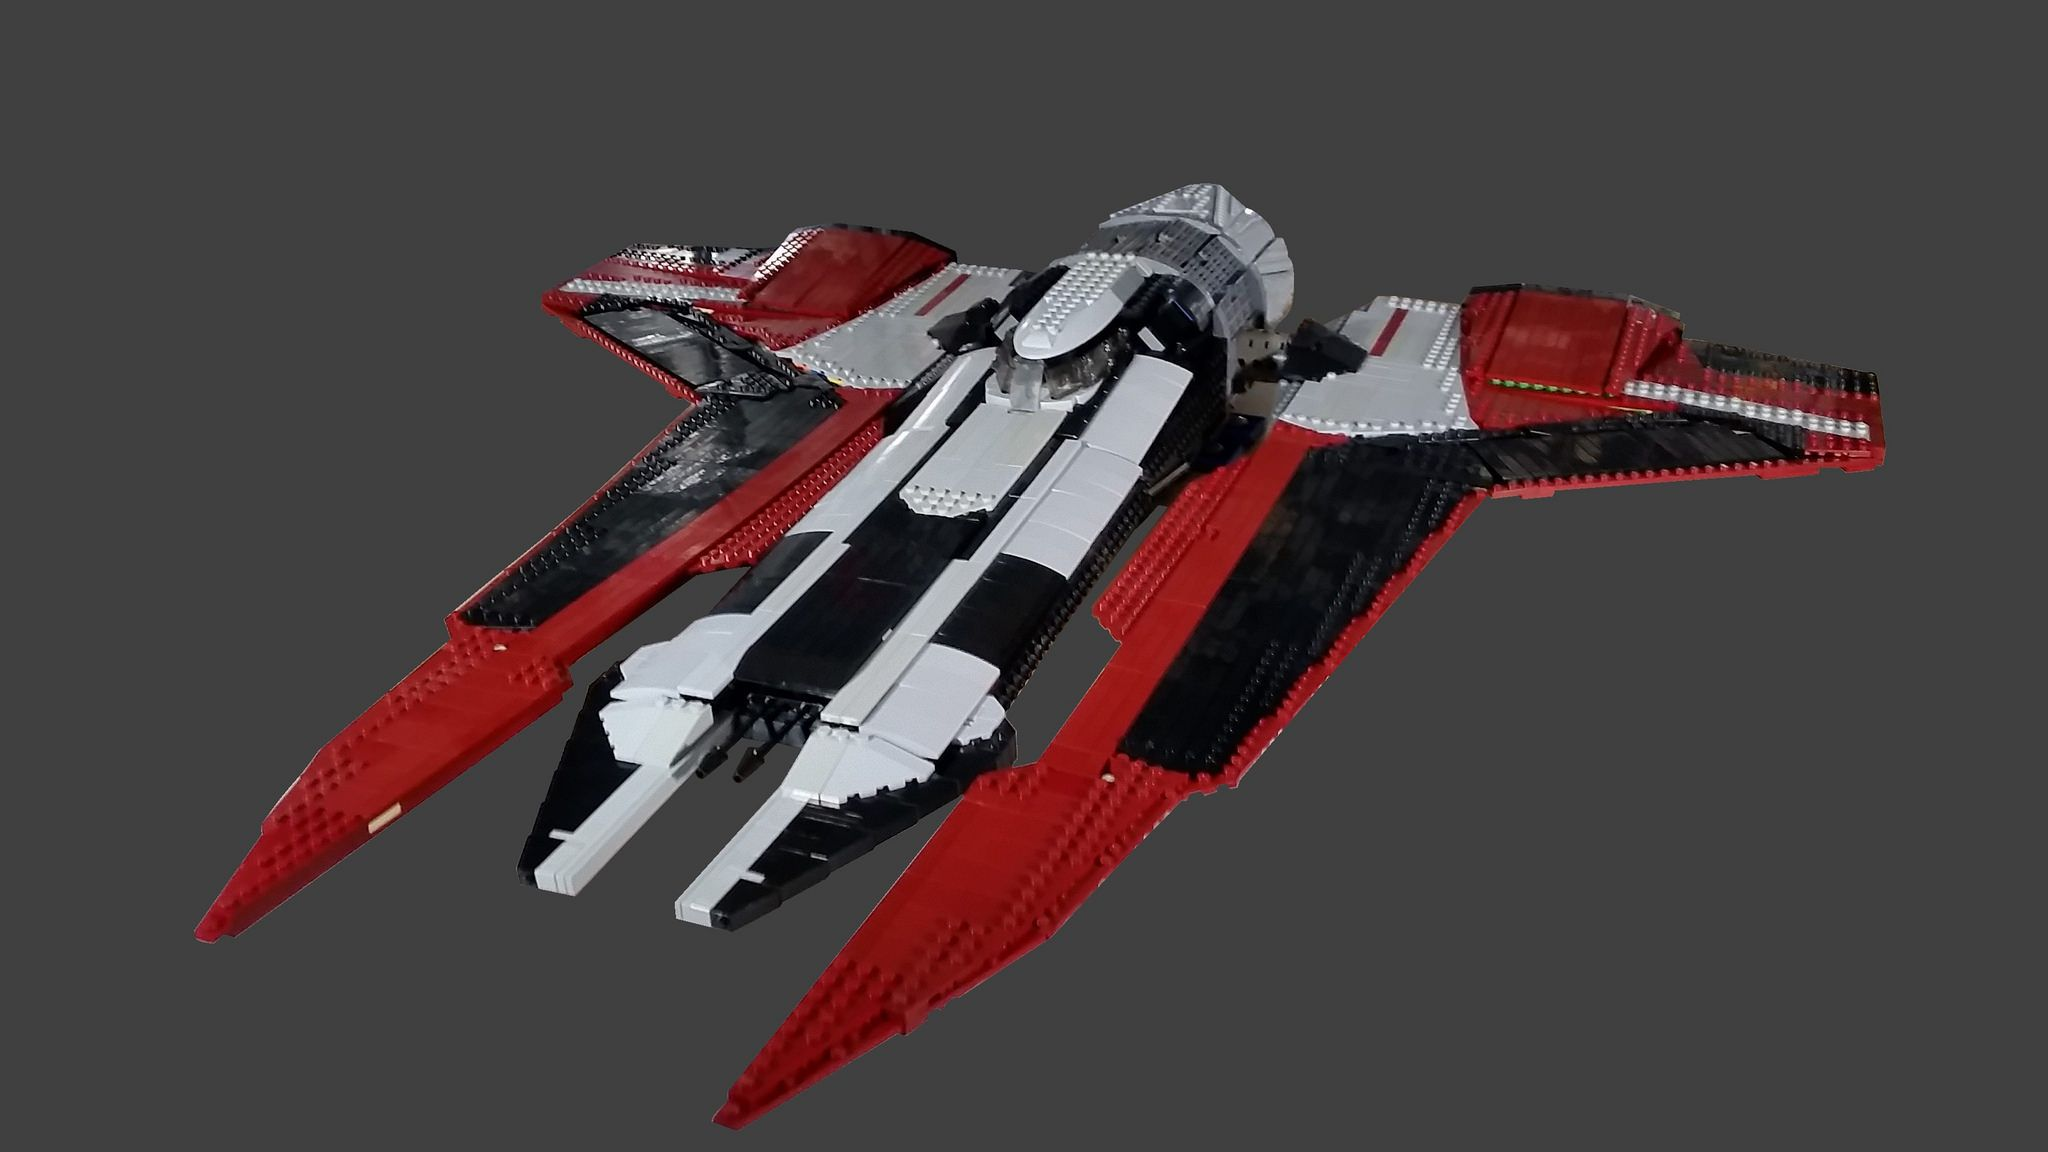 Gauntlet Fighter 2 Lego Lego Spaceship Lego Star Wars Lego Ship